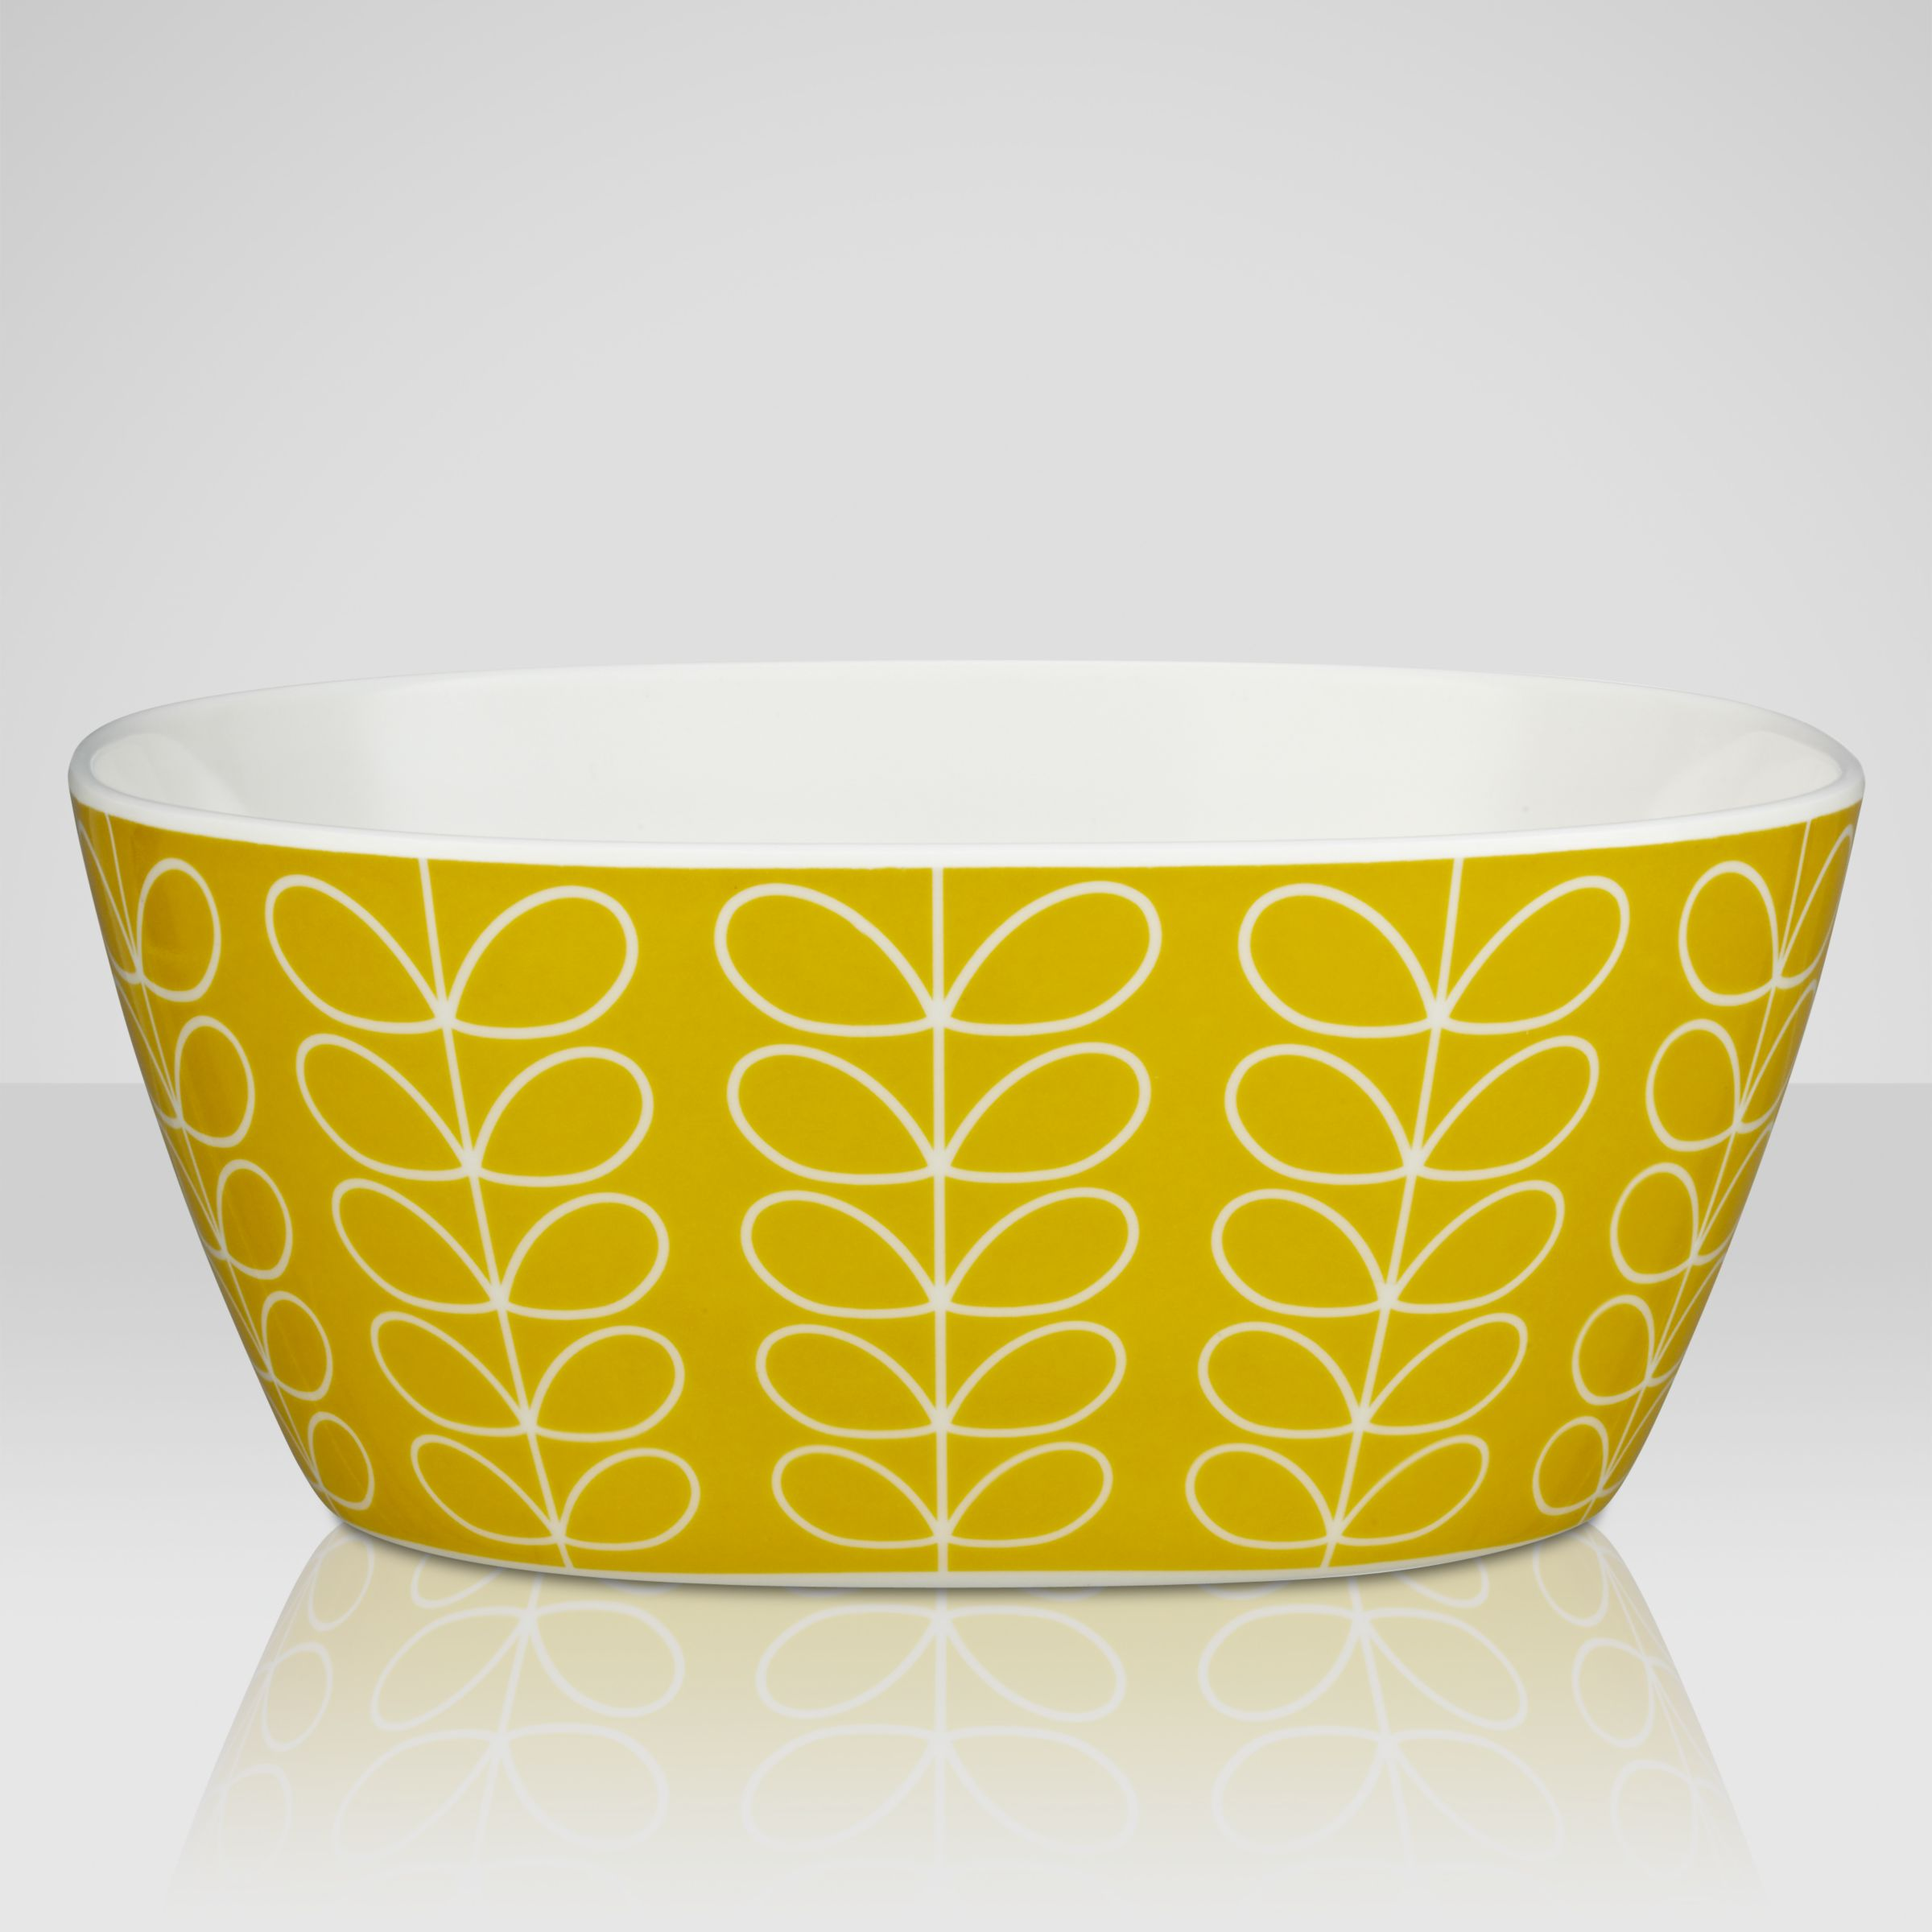 Orla Kiely Linear Stem Melamine Bowl, Lemon, Small